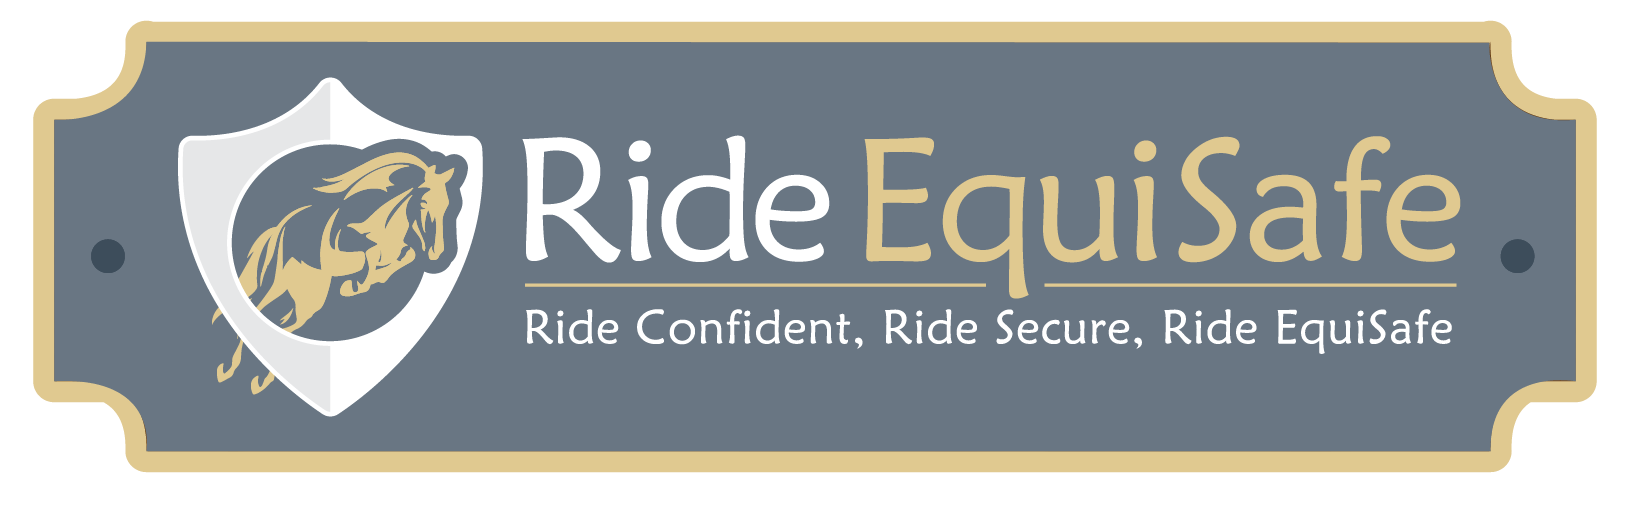 Ride EquiSafe